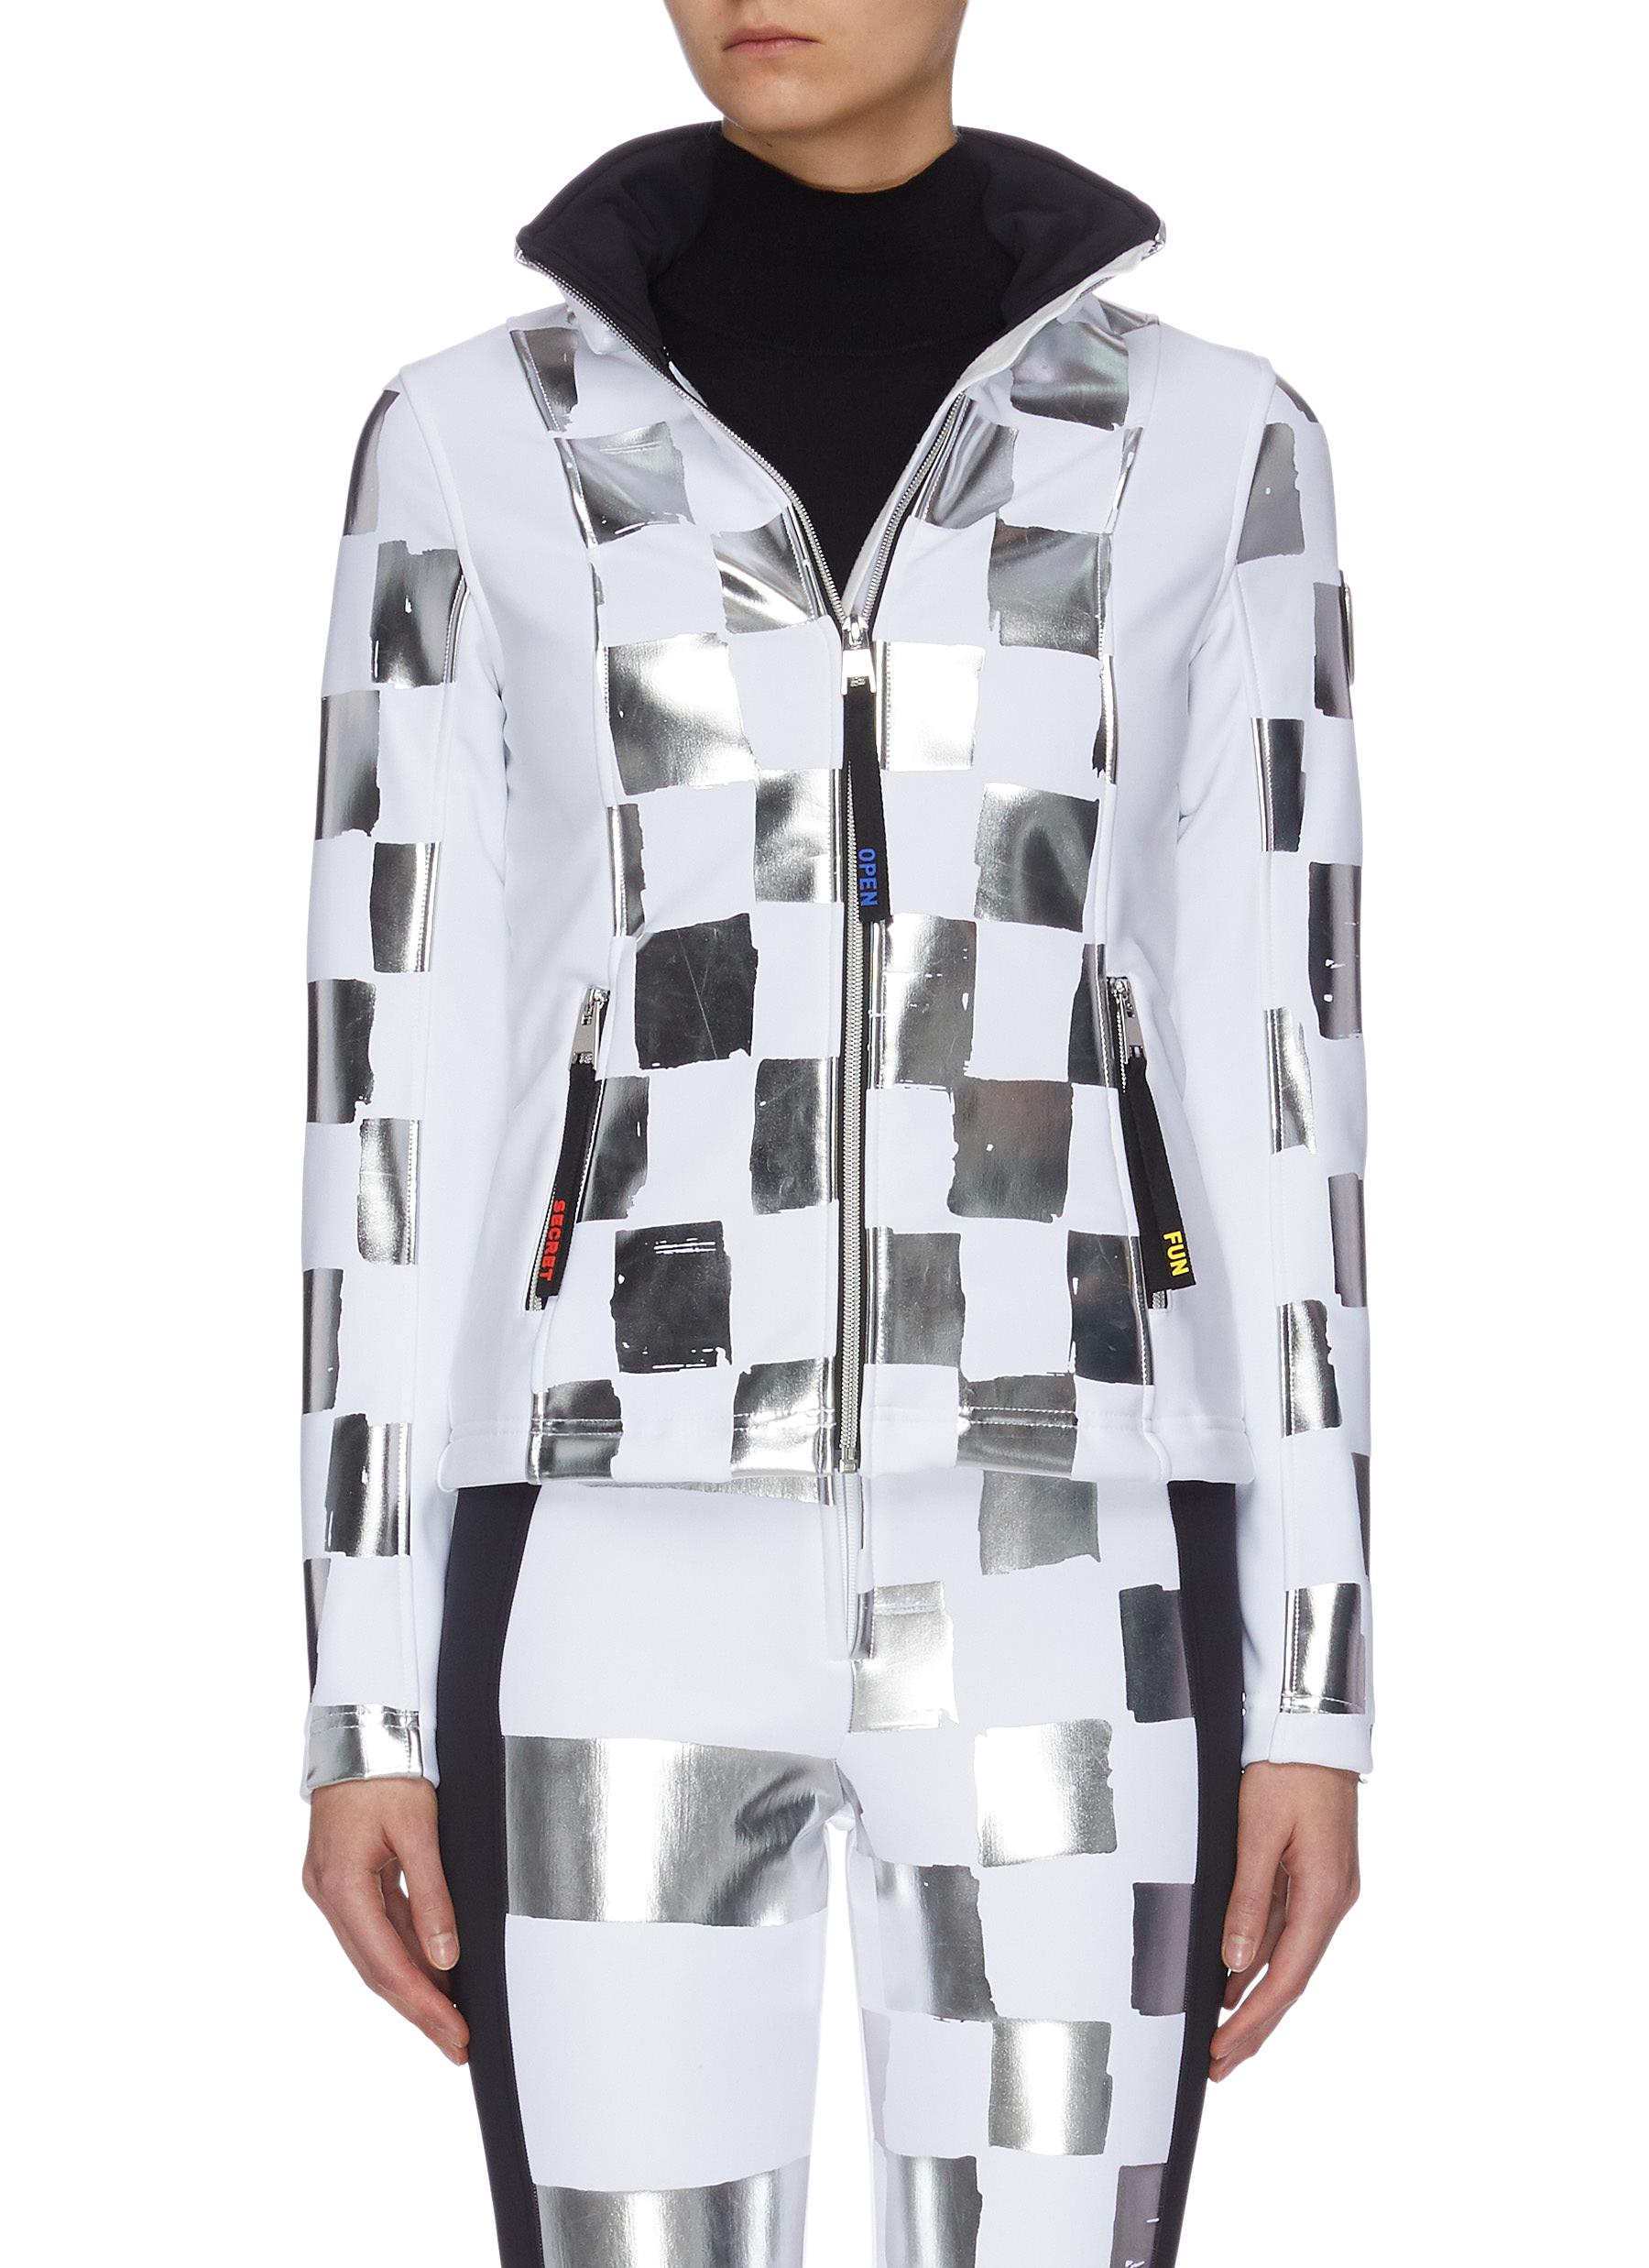 Buy Rossignol Jackets x JCC 'Wari' metallic check soft shell ski jacket